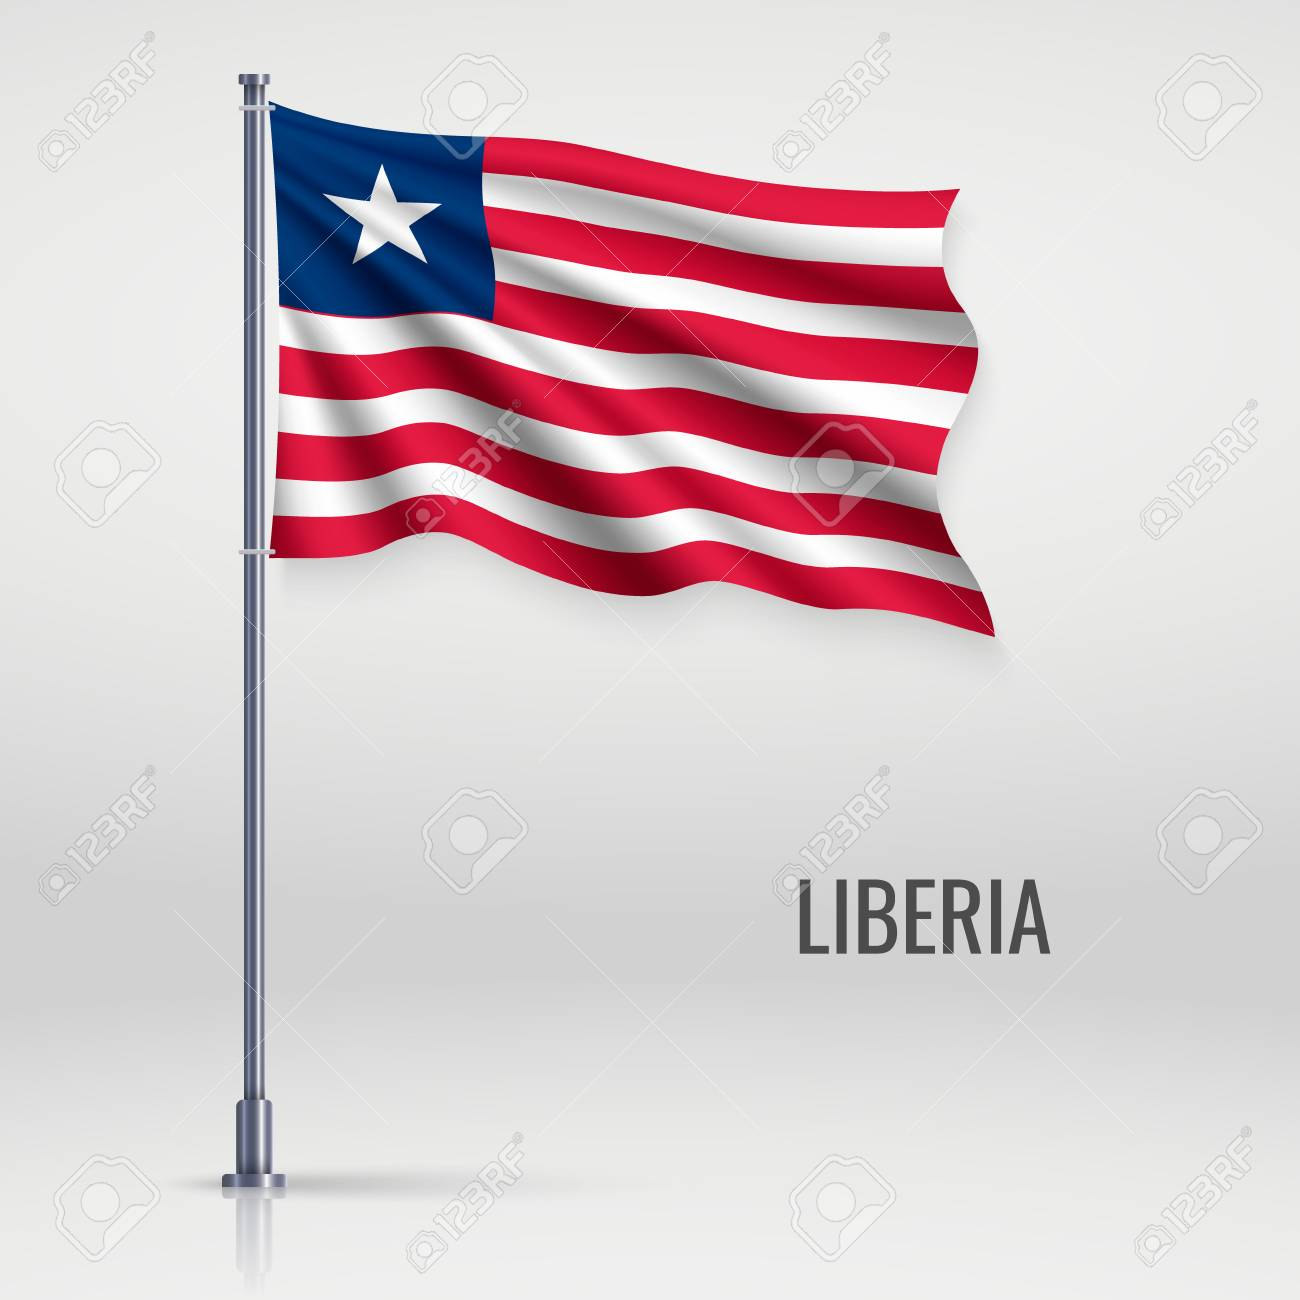 Waving flag of Liberia on flagpole  Template for independence